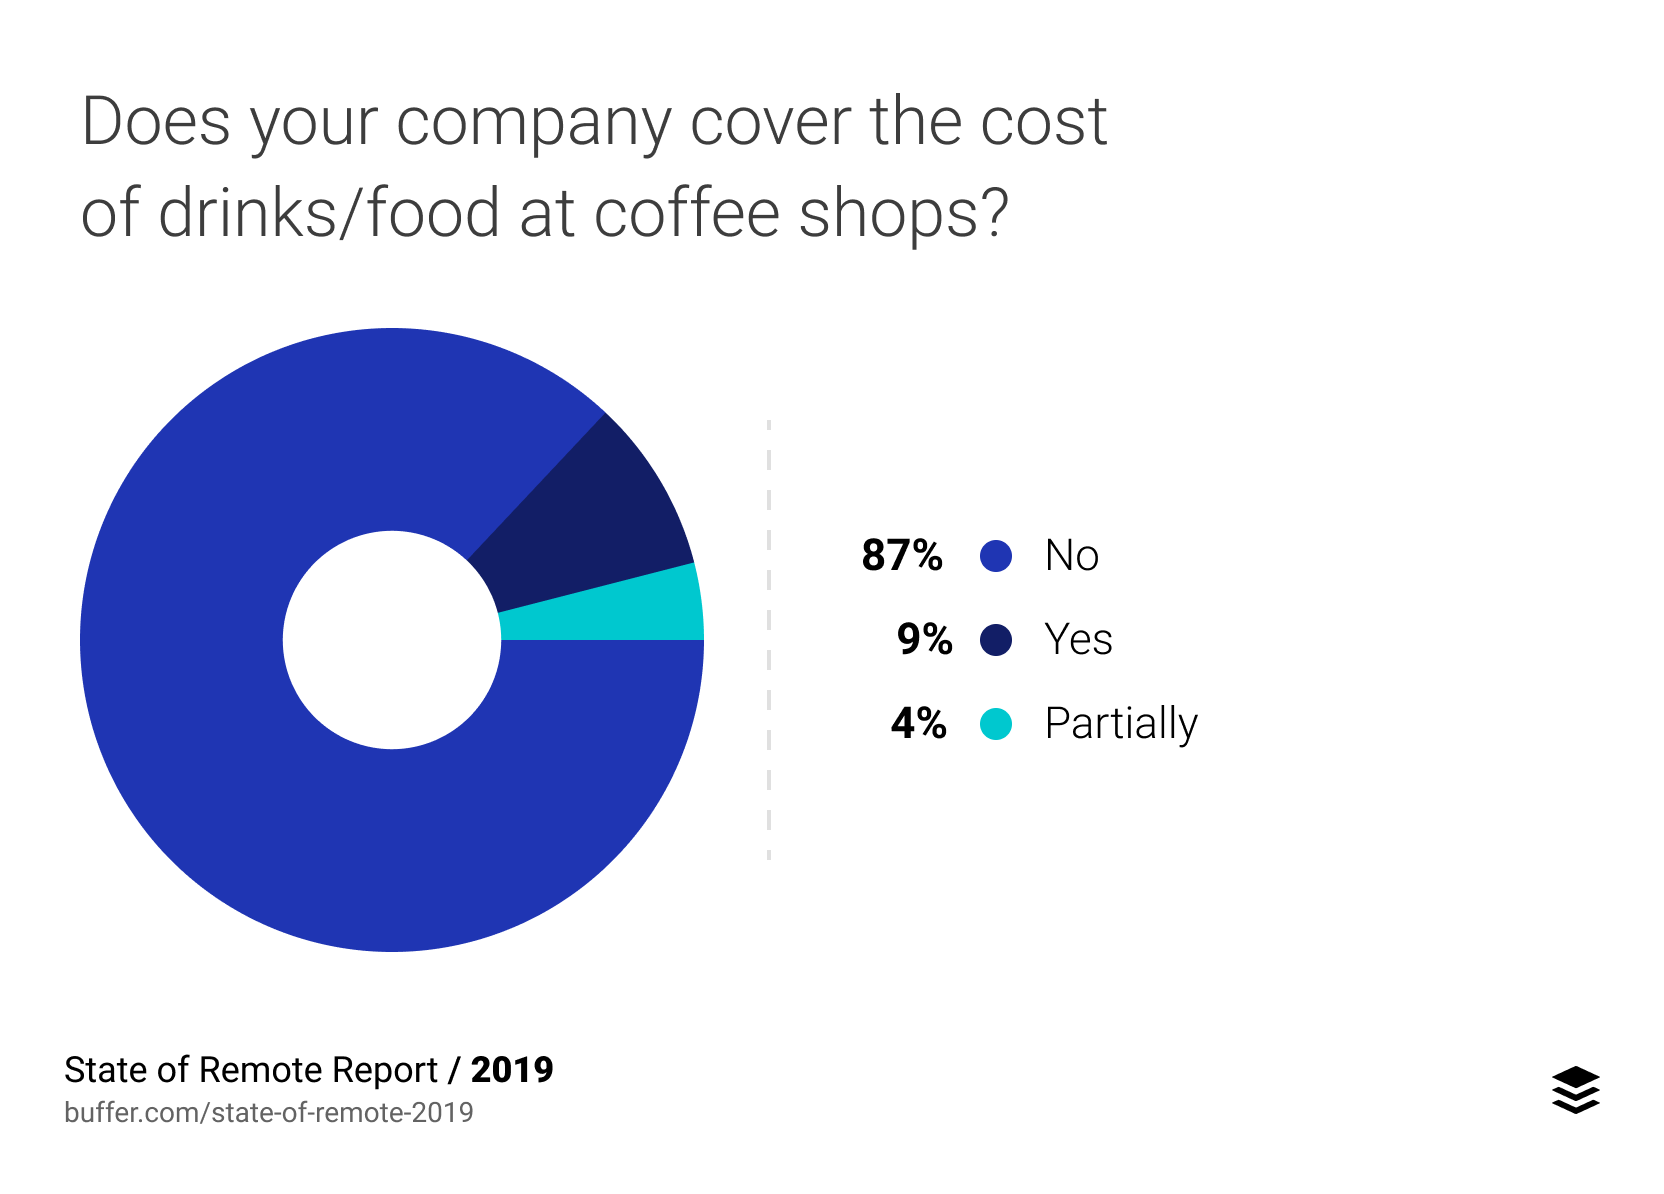 Does your company cover the cost of drinks/food at coffee shops?